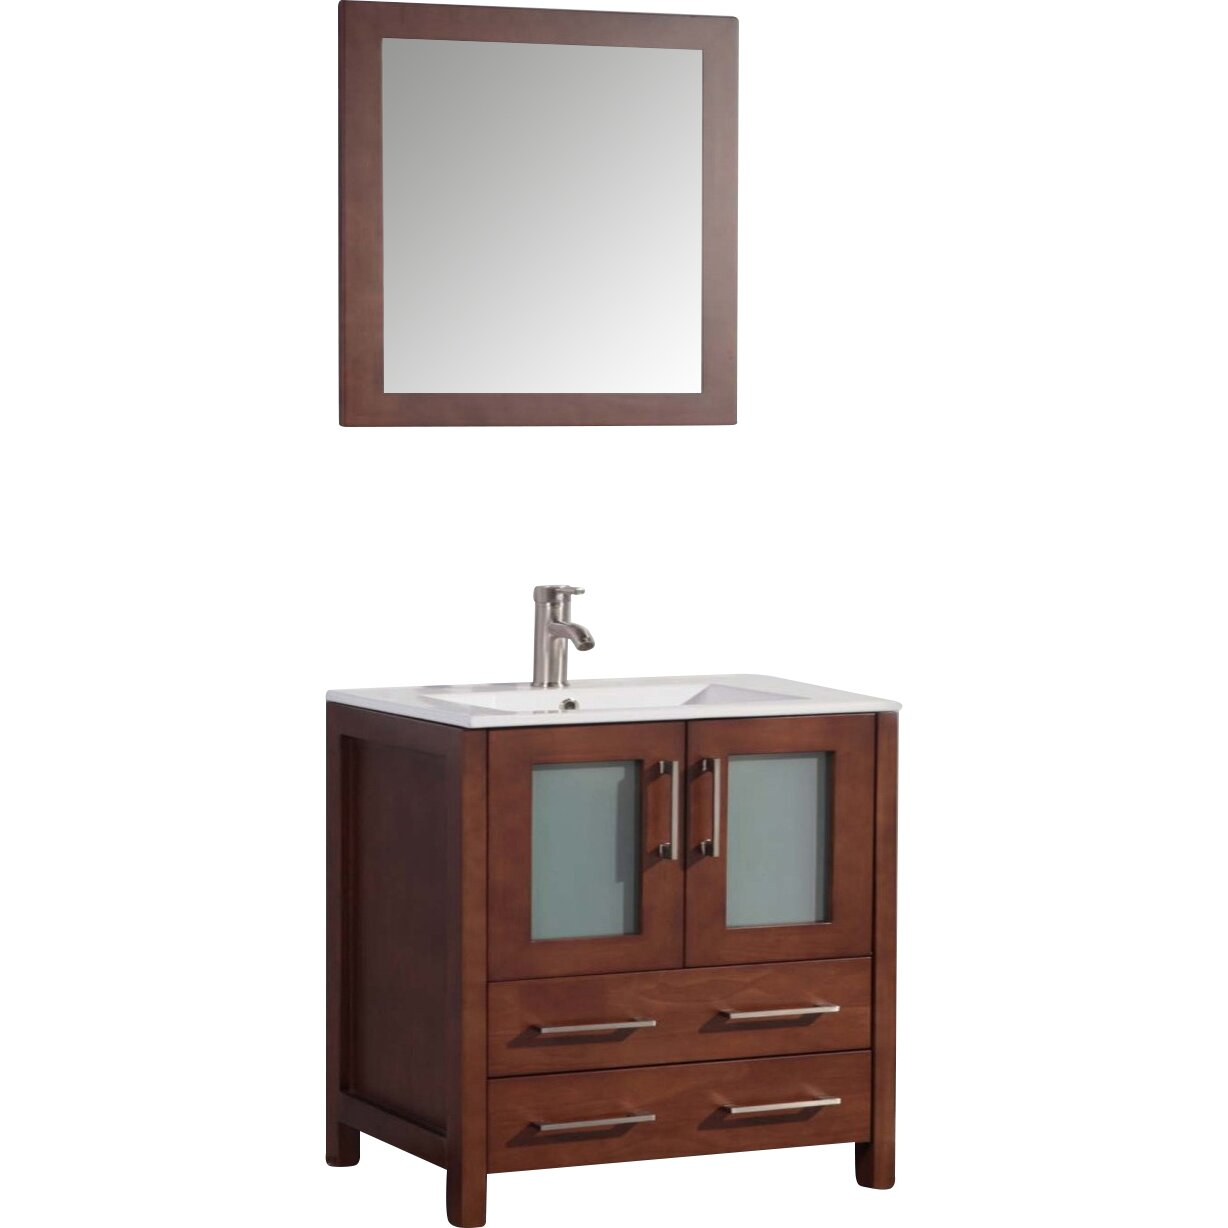 Legion furniture 30 single bathroom vanity set with - Wayfair furniture bathroom vanities ...